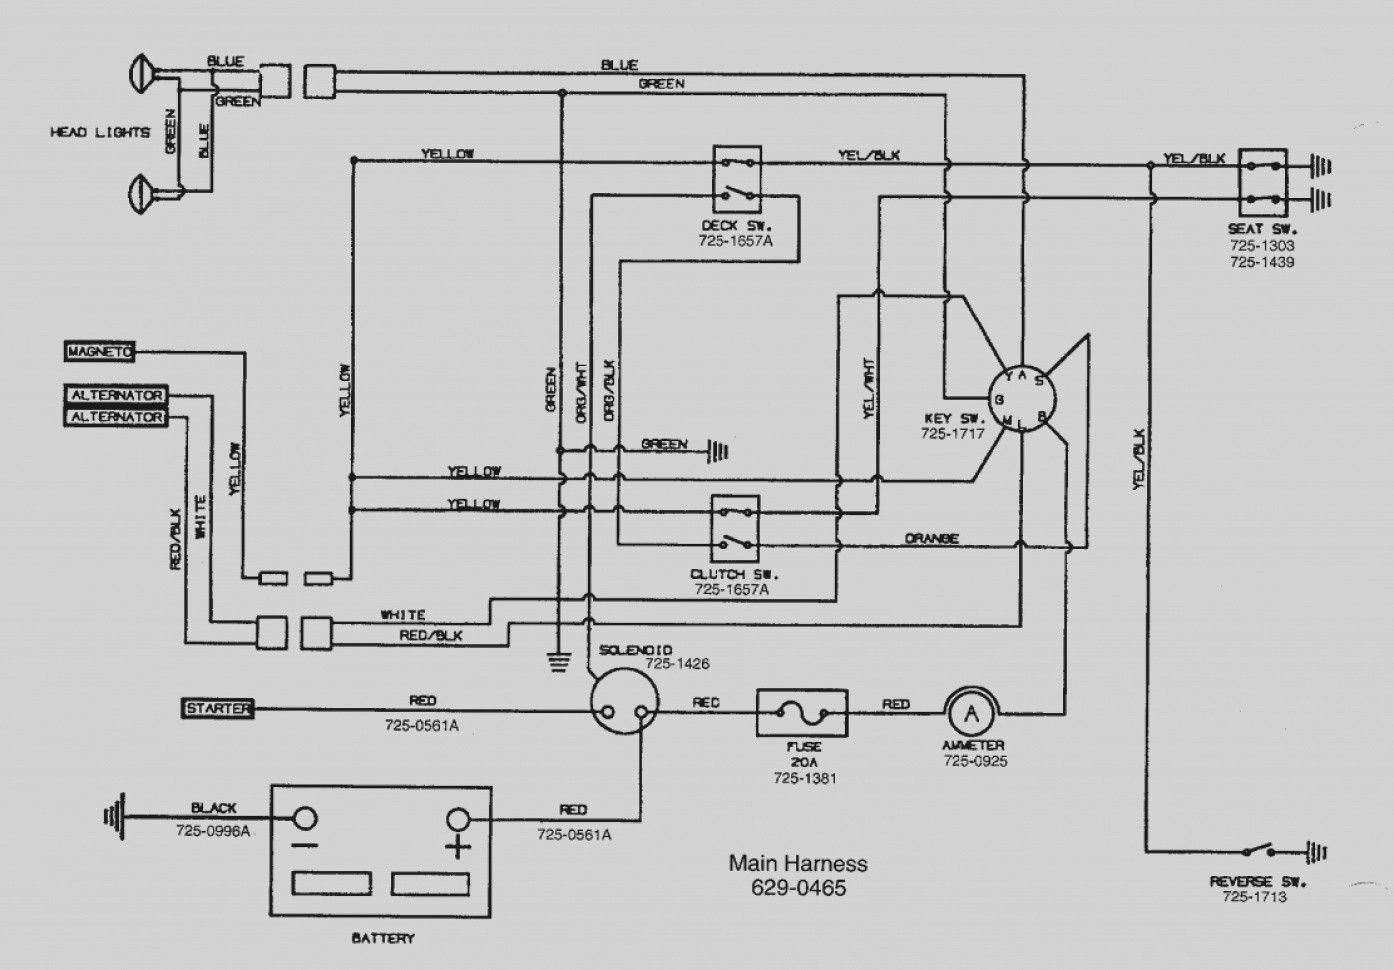 mtd lawnflite wiring diagram manual e book Lawn Tractor Ignition Switch Diagram